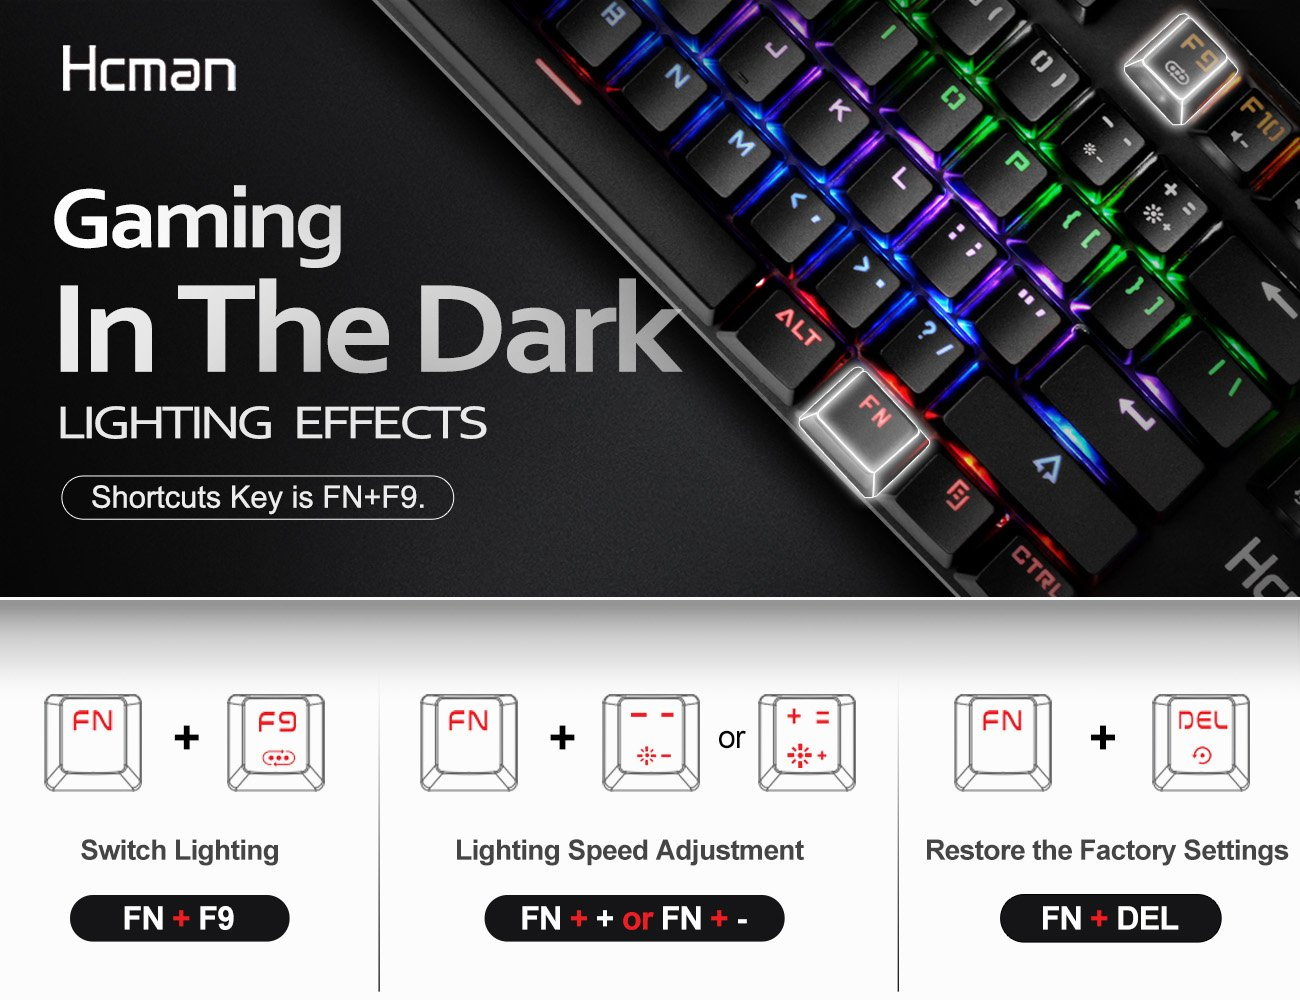 Mechanical Gaming Keyboard LED Backlit - Hcman Wired Keyboard Blue Switches 9 Backlight Modes,Metal Plate 100% Anti-ghosting for Computer PC & Mac Gamers (Black)